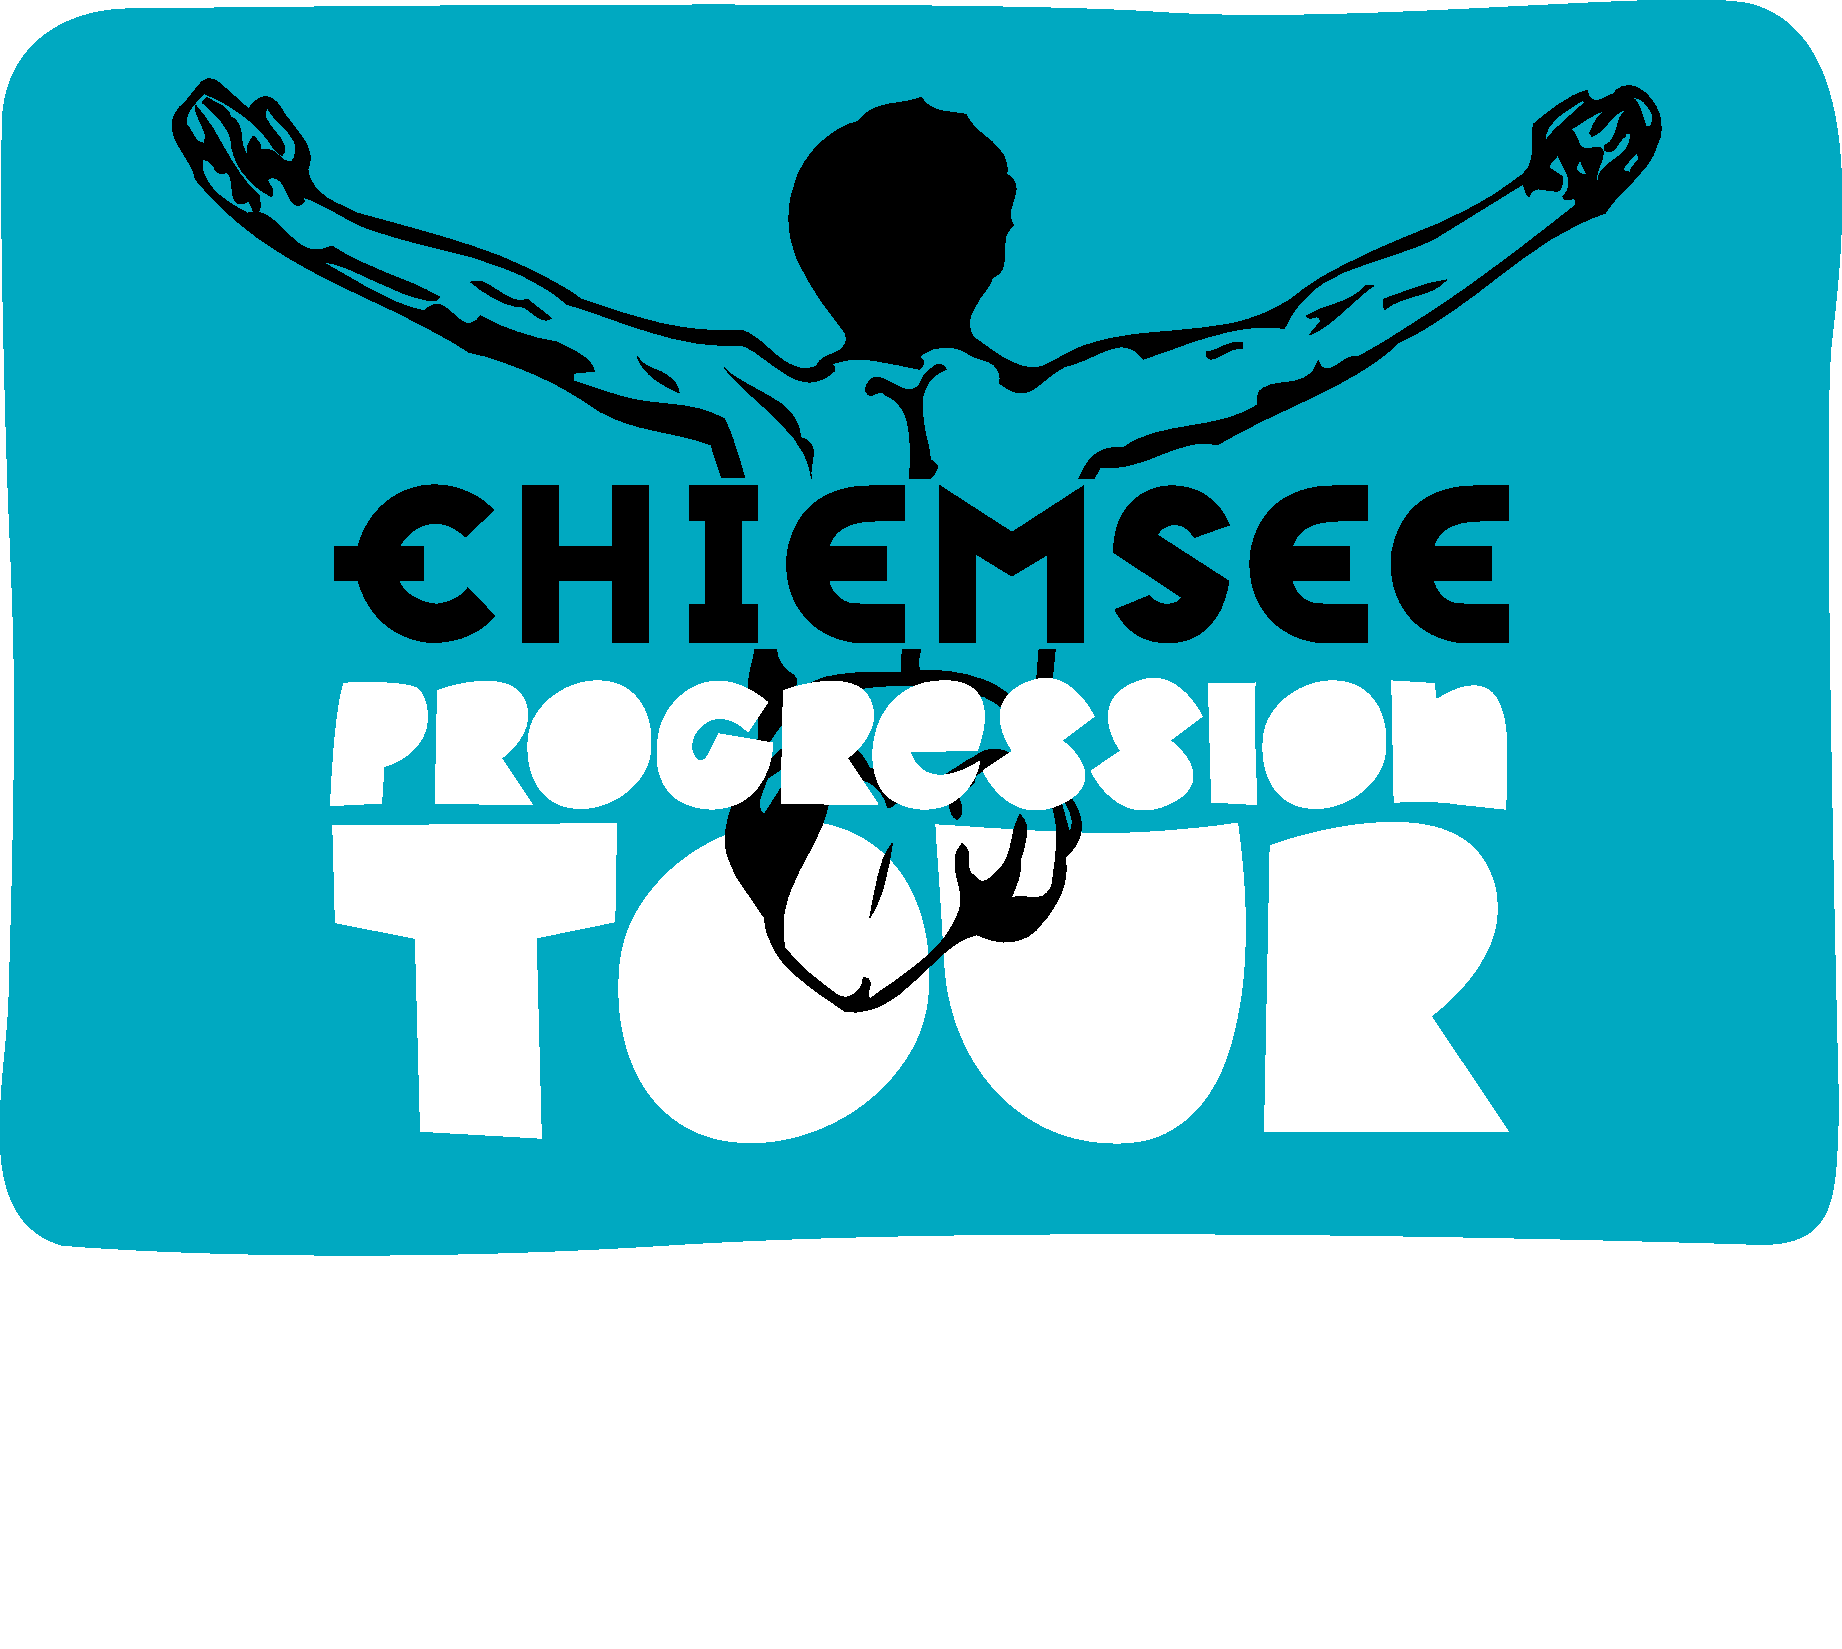 CHIEMSEE PROGRESSION TOUR LOGO